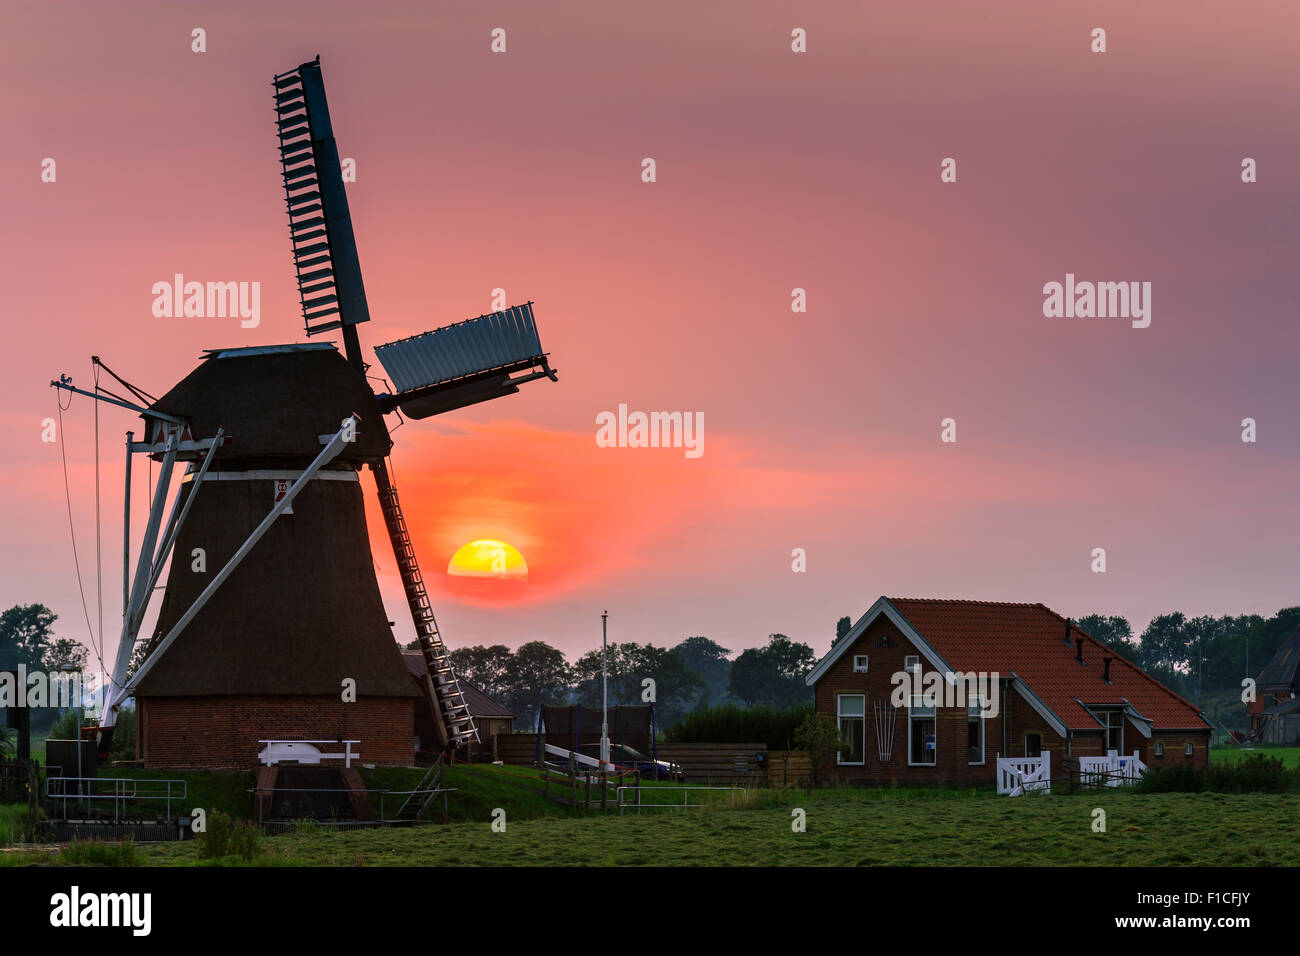 Windmill De Jonge Held (The Young Hero) at Leegkerk, just outside of Groningen, the Netherlands. - Stock Image